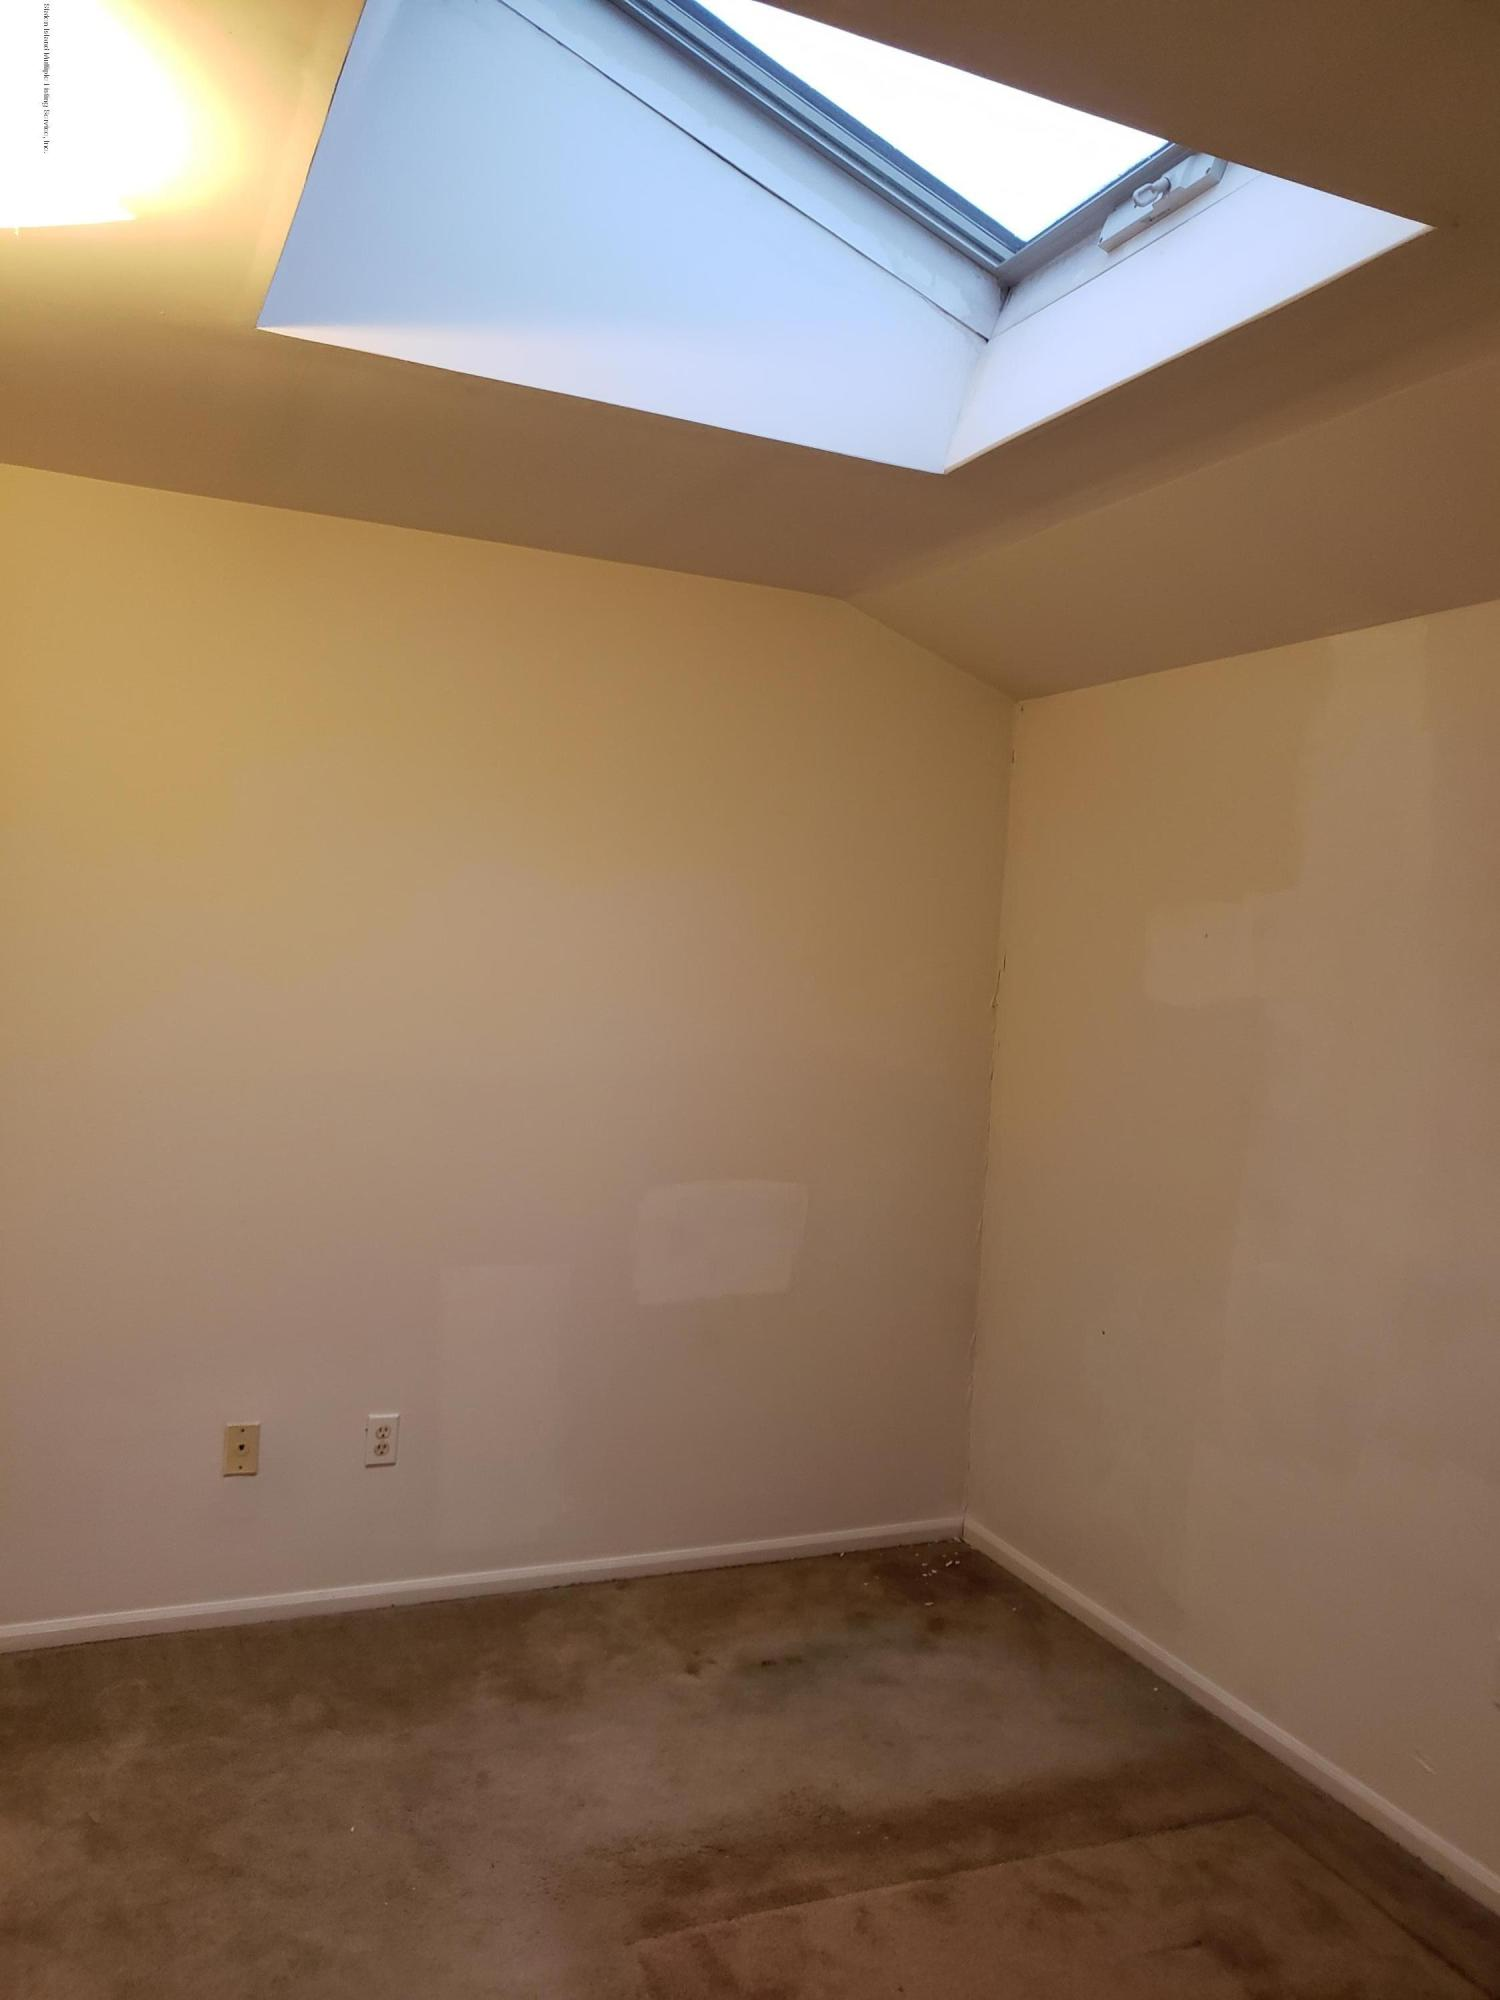 Single Family - Attached 42 Leewood Loop  Staten Island, NY 10304, MLS-1125781-18